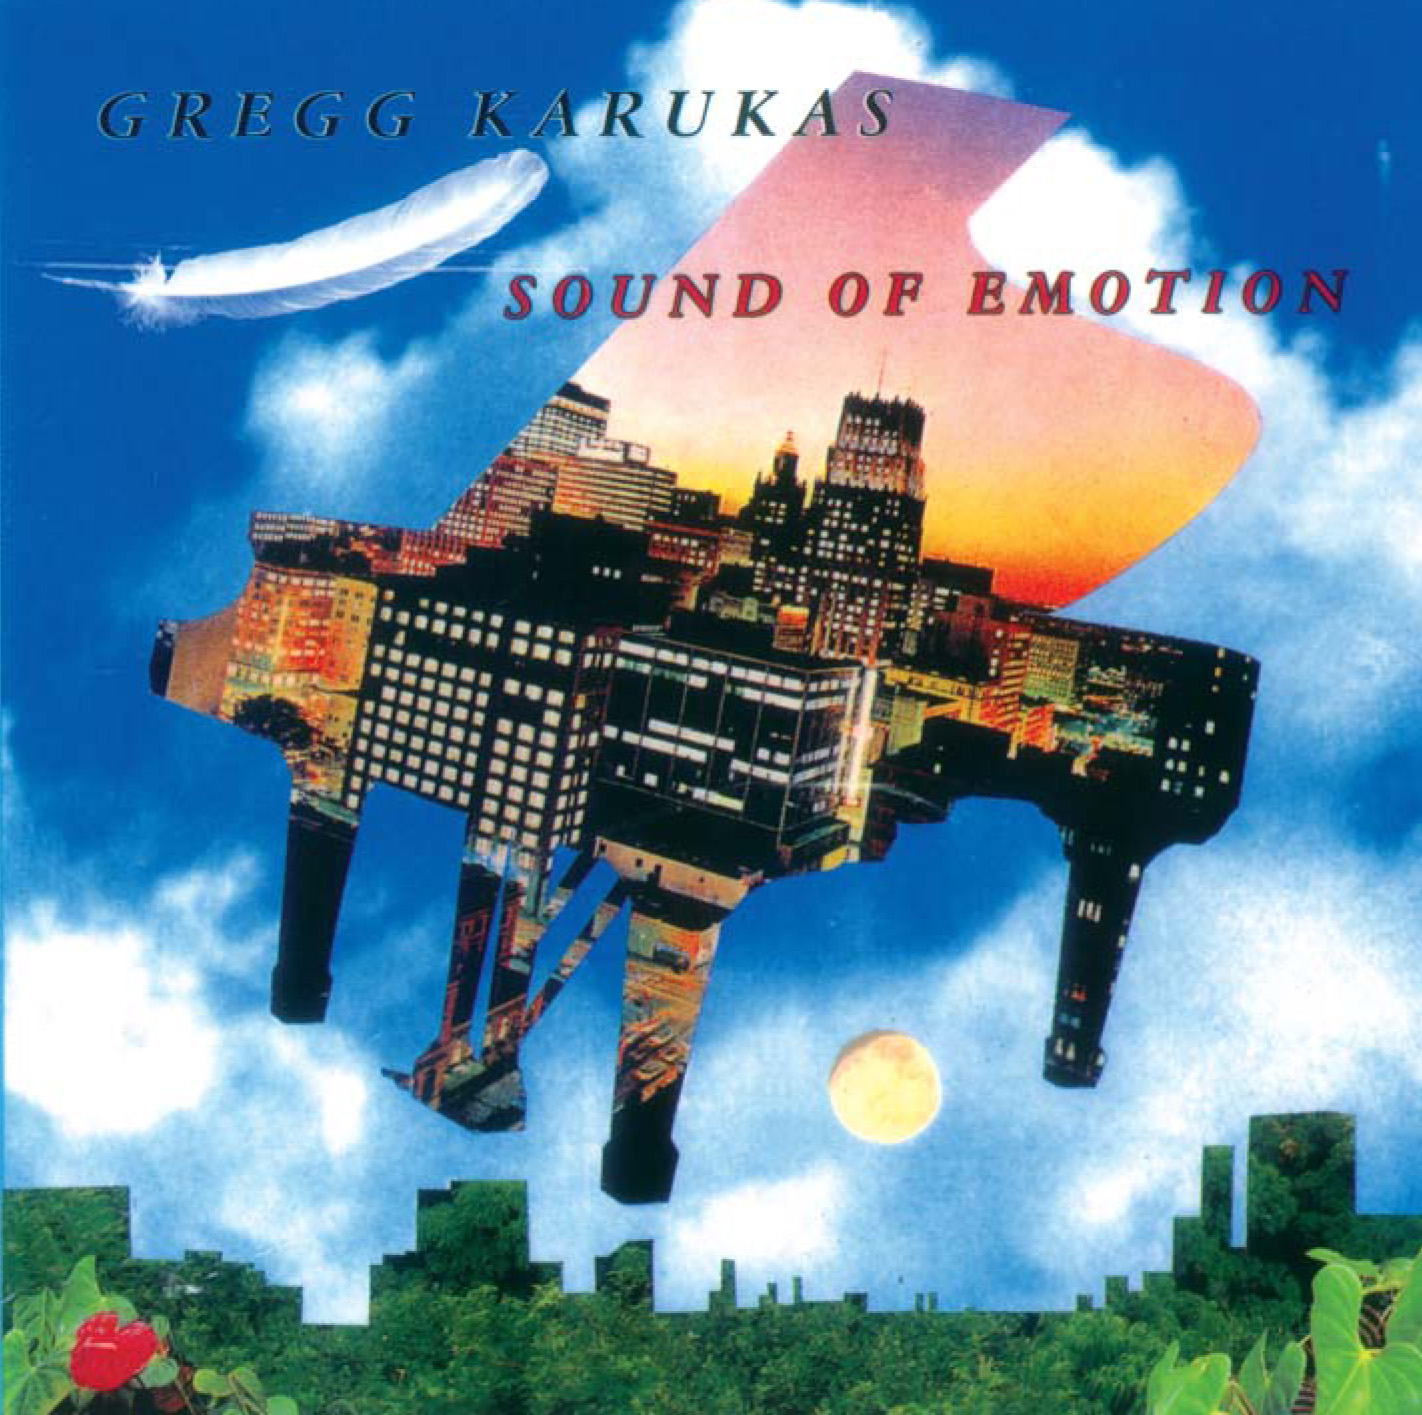 Sound of emotion cd cover good.jpg